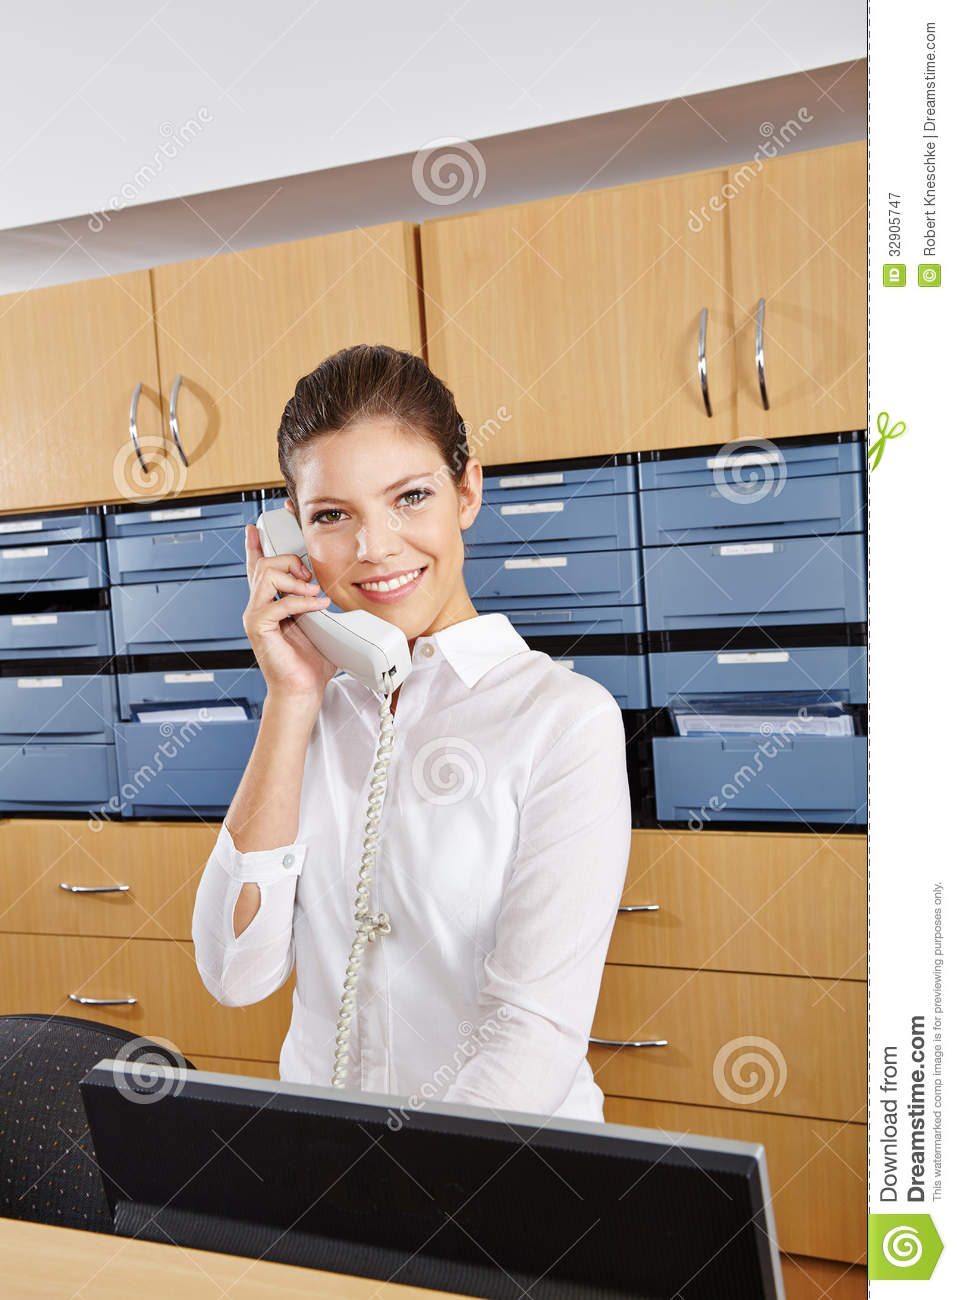 Young receptionist in a hospital taking a phone call Hospital Receptionist